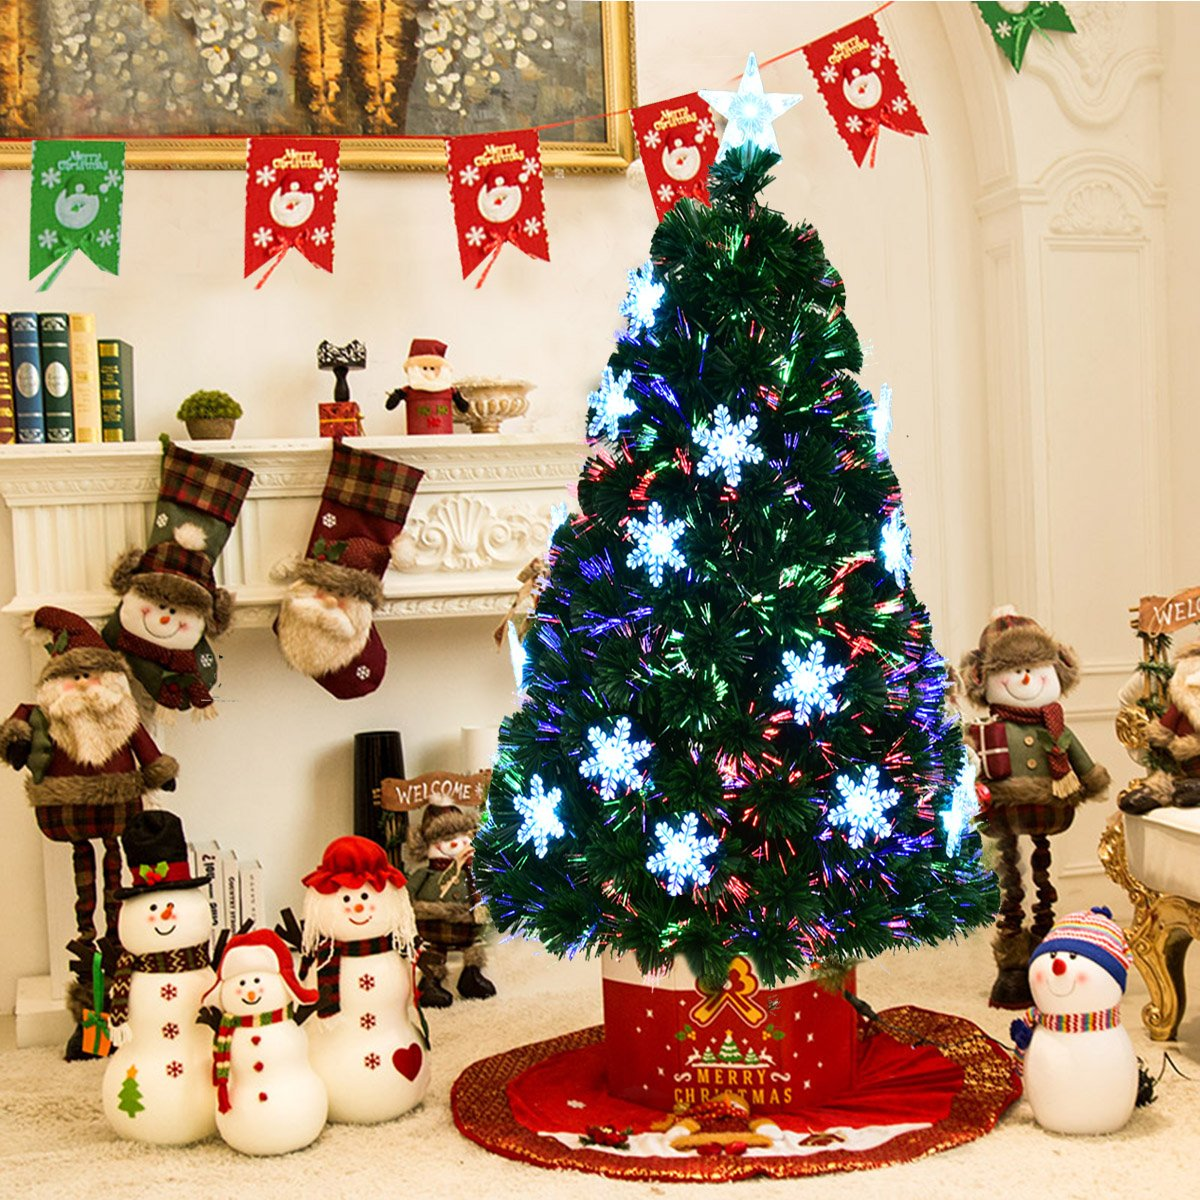 1e5d50ccd0e3 GYMAX 4FT 5FT 6FT 7FT Fiber Optic Christmas Tree 4 FT/ 120 CM Green Artificial  Xmas Tree with Flashing Light Top Star ...